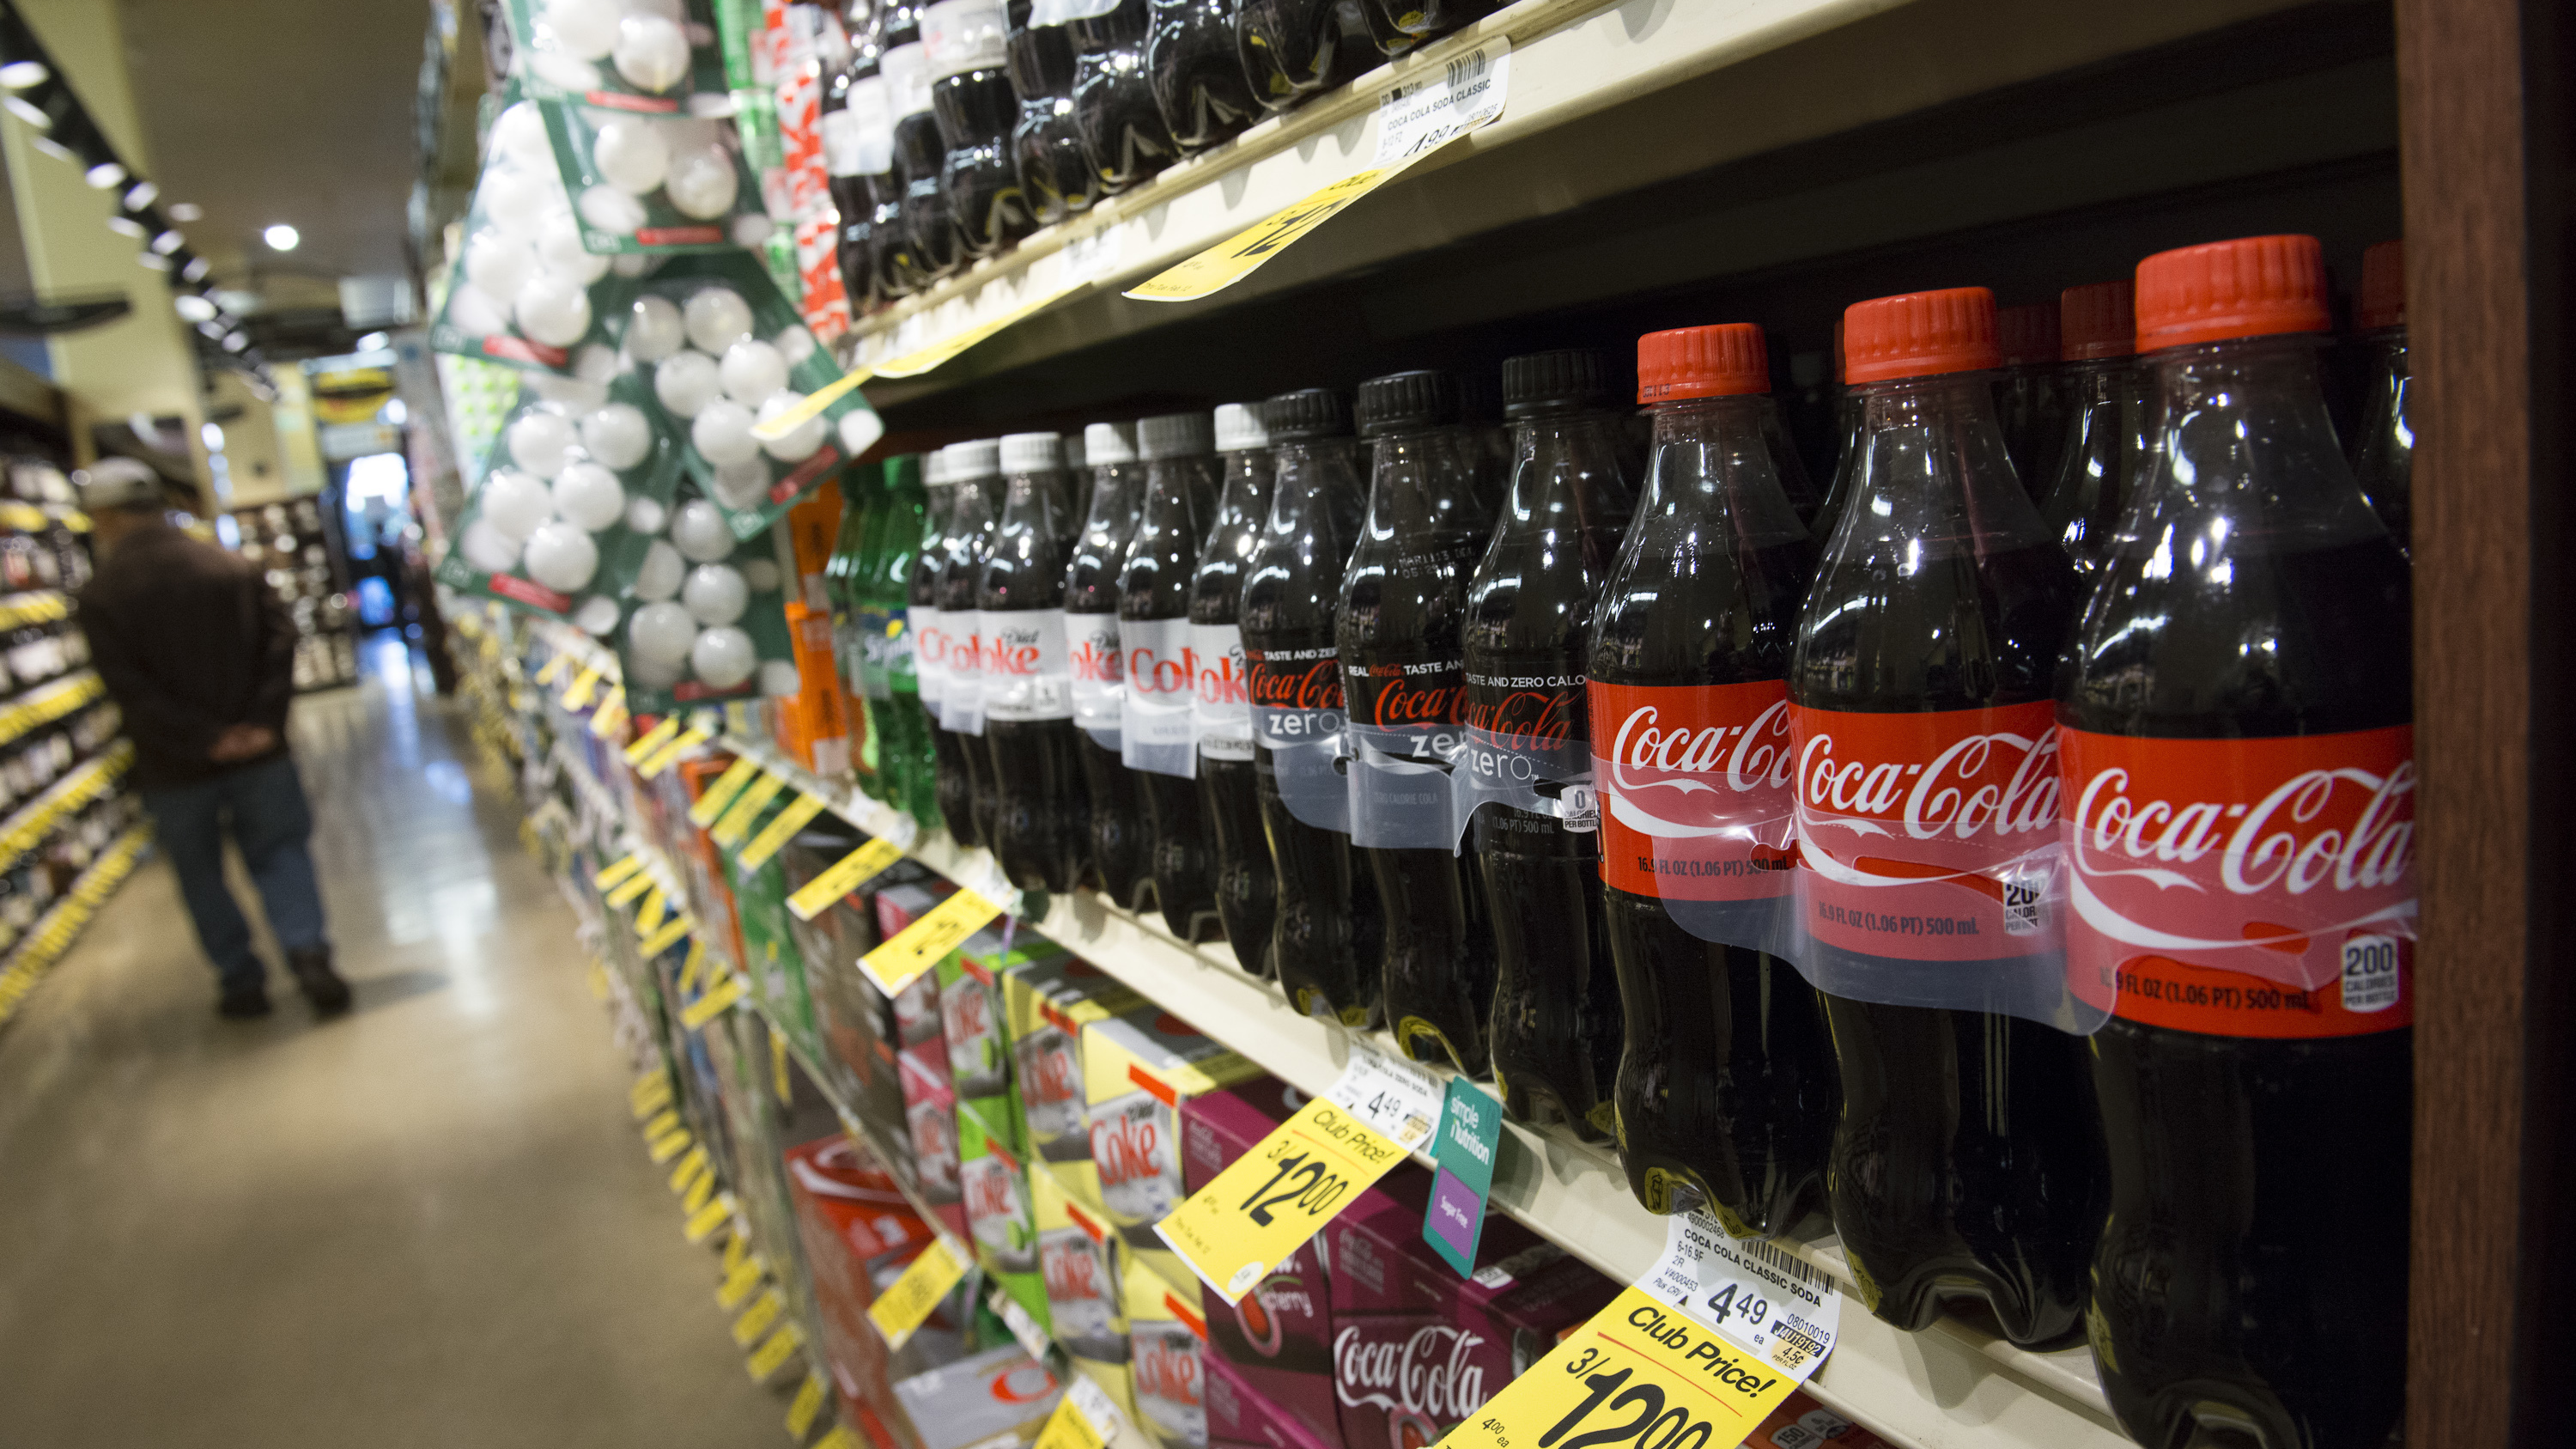 Food assistance recipients spend about 10 percent of their food budget on sugary drinks, while the rest of the population spends about 7 percent. (David Paul Morris/Bloomberg via Getty Images)